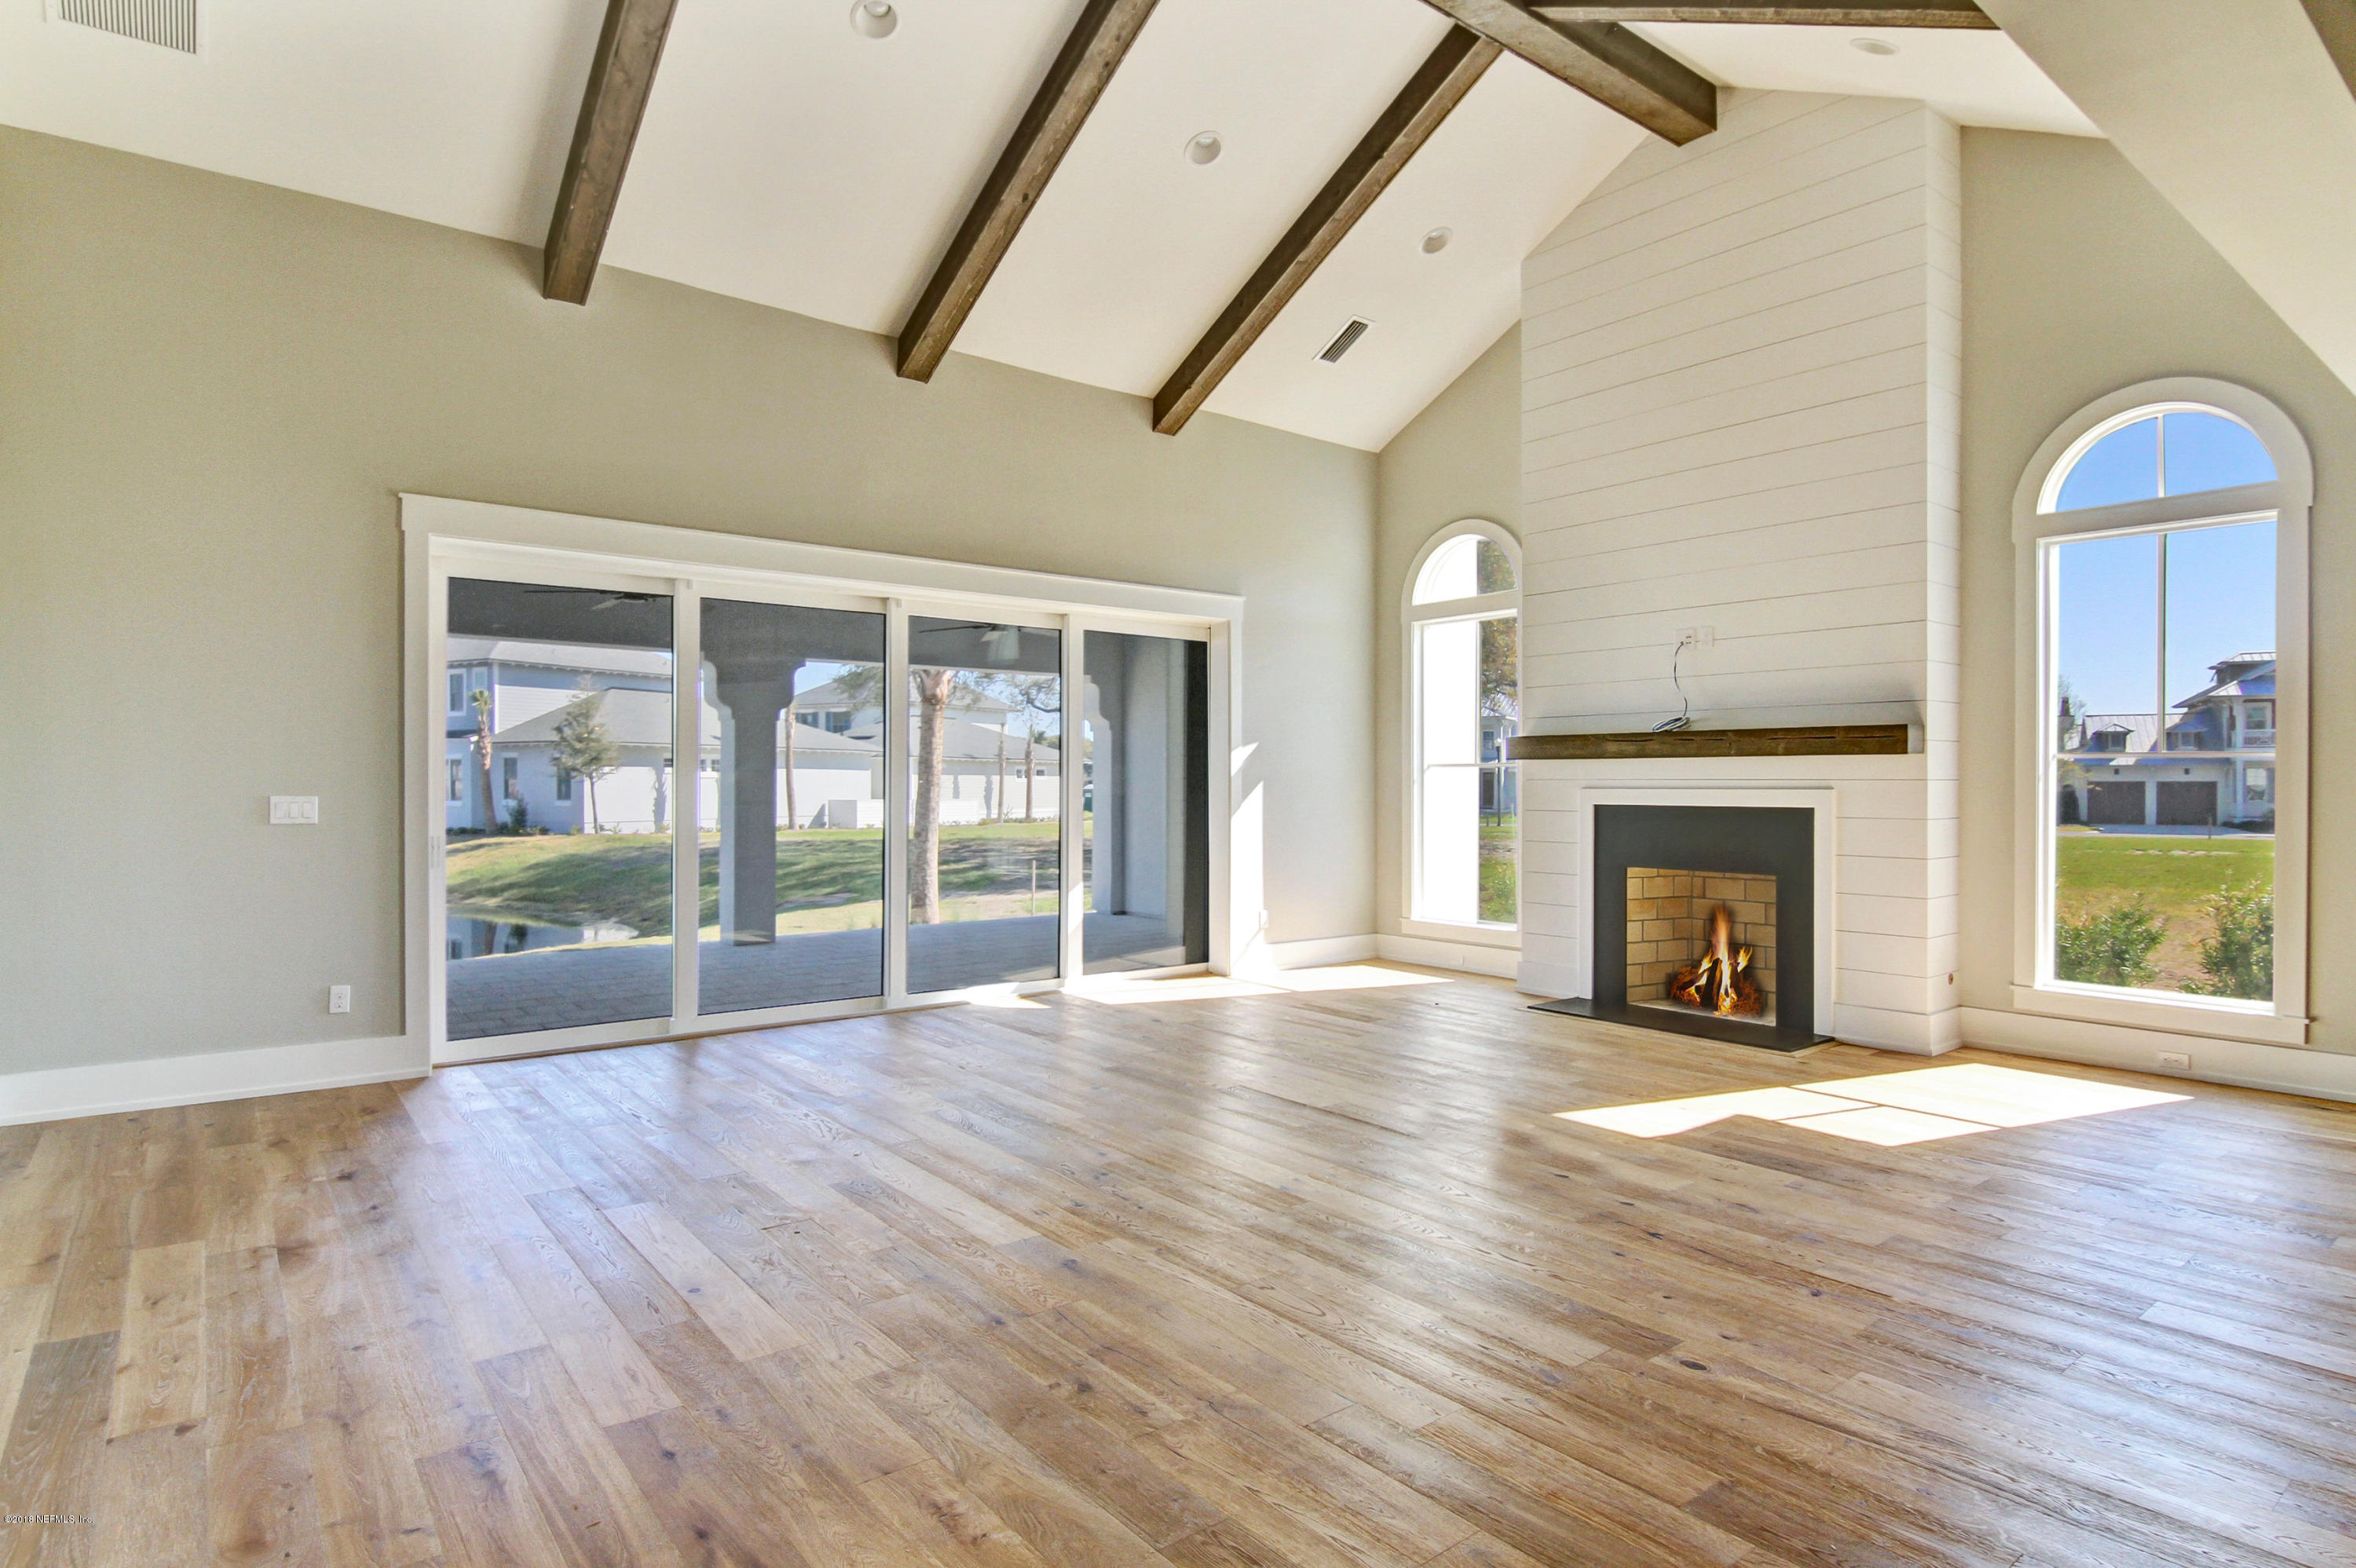 82 GRAND PALM, PONTE VEDRA BEACH, FLORIDA 32082, 4 Bedrooms Bedrooms, ,4 BathroomsBathrooms,Residential - single family,For sale,GRAND PALM,928357